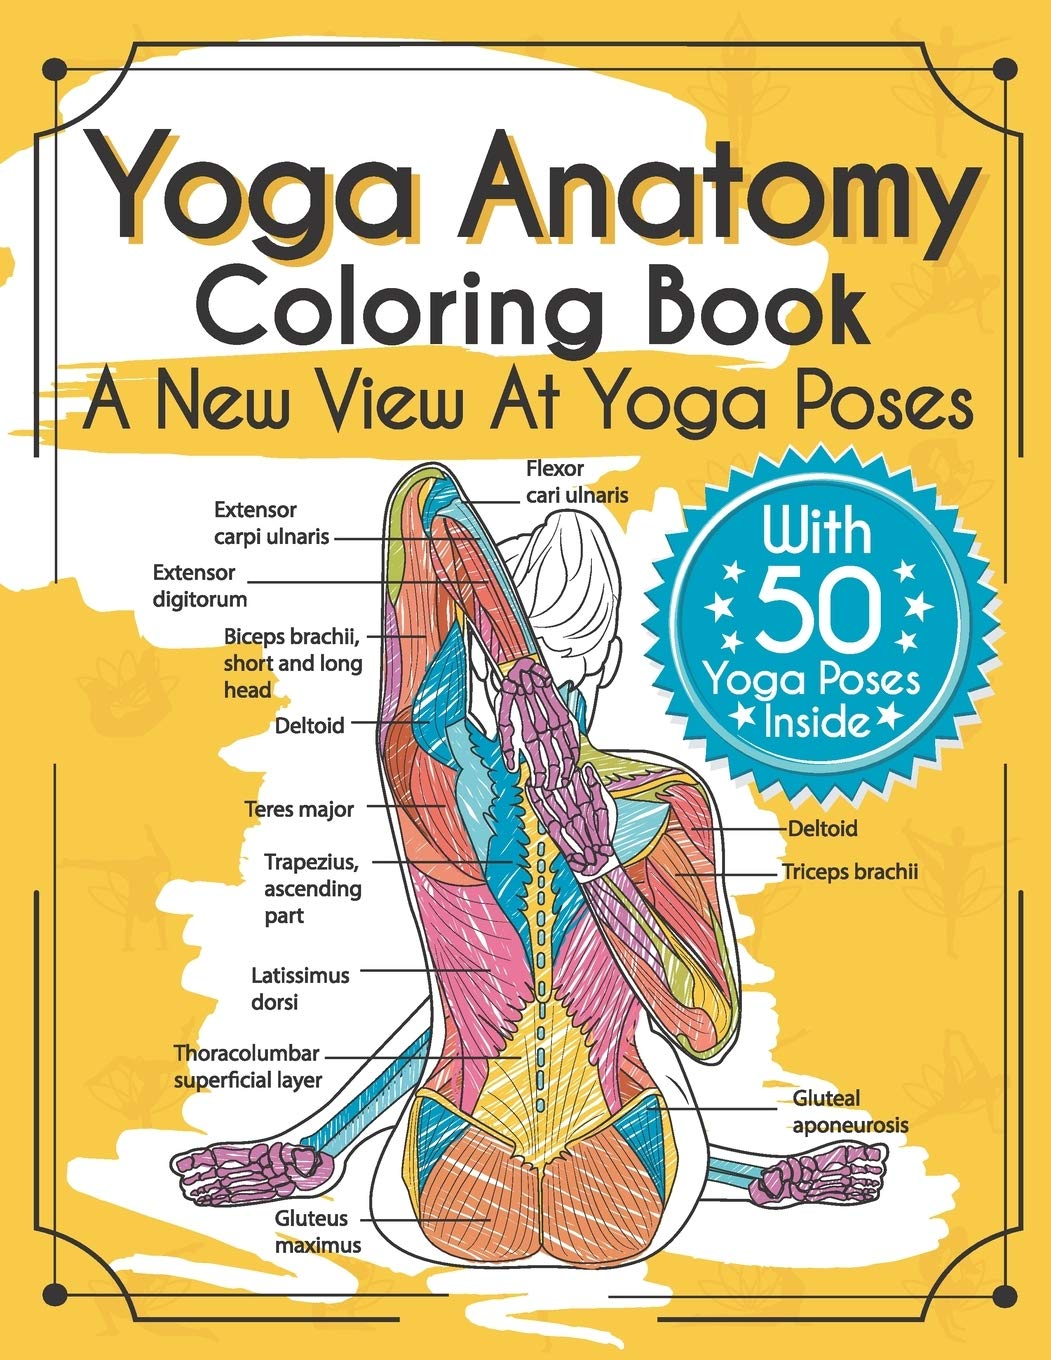 Amazon.com: Yoga Anatomy Coloring Book: A New View At Yoga ...